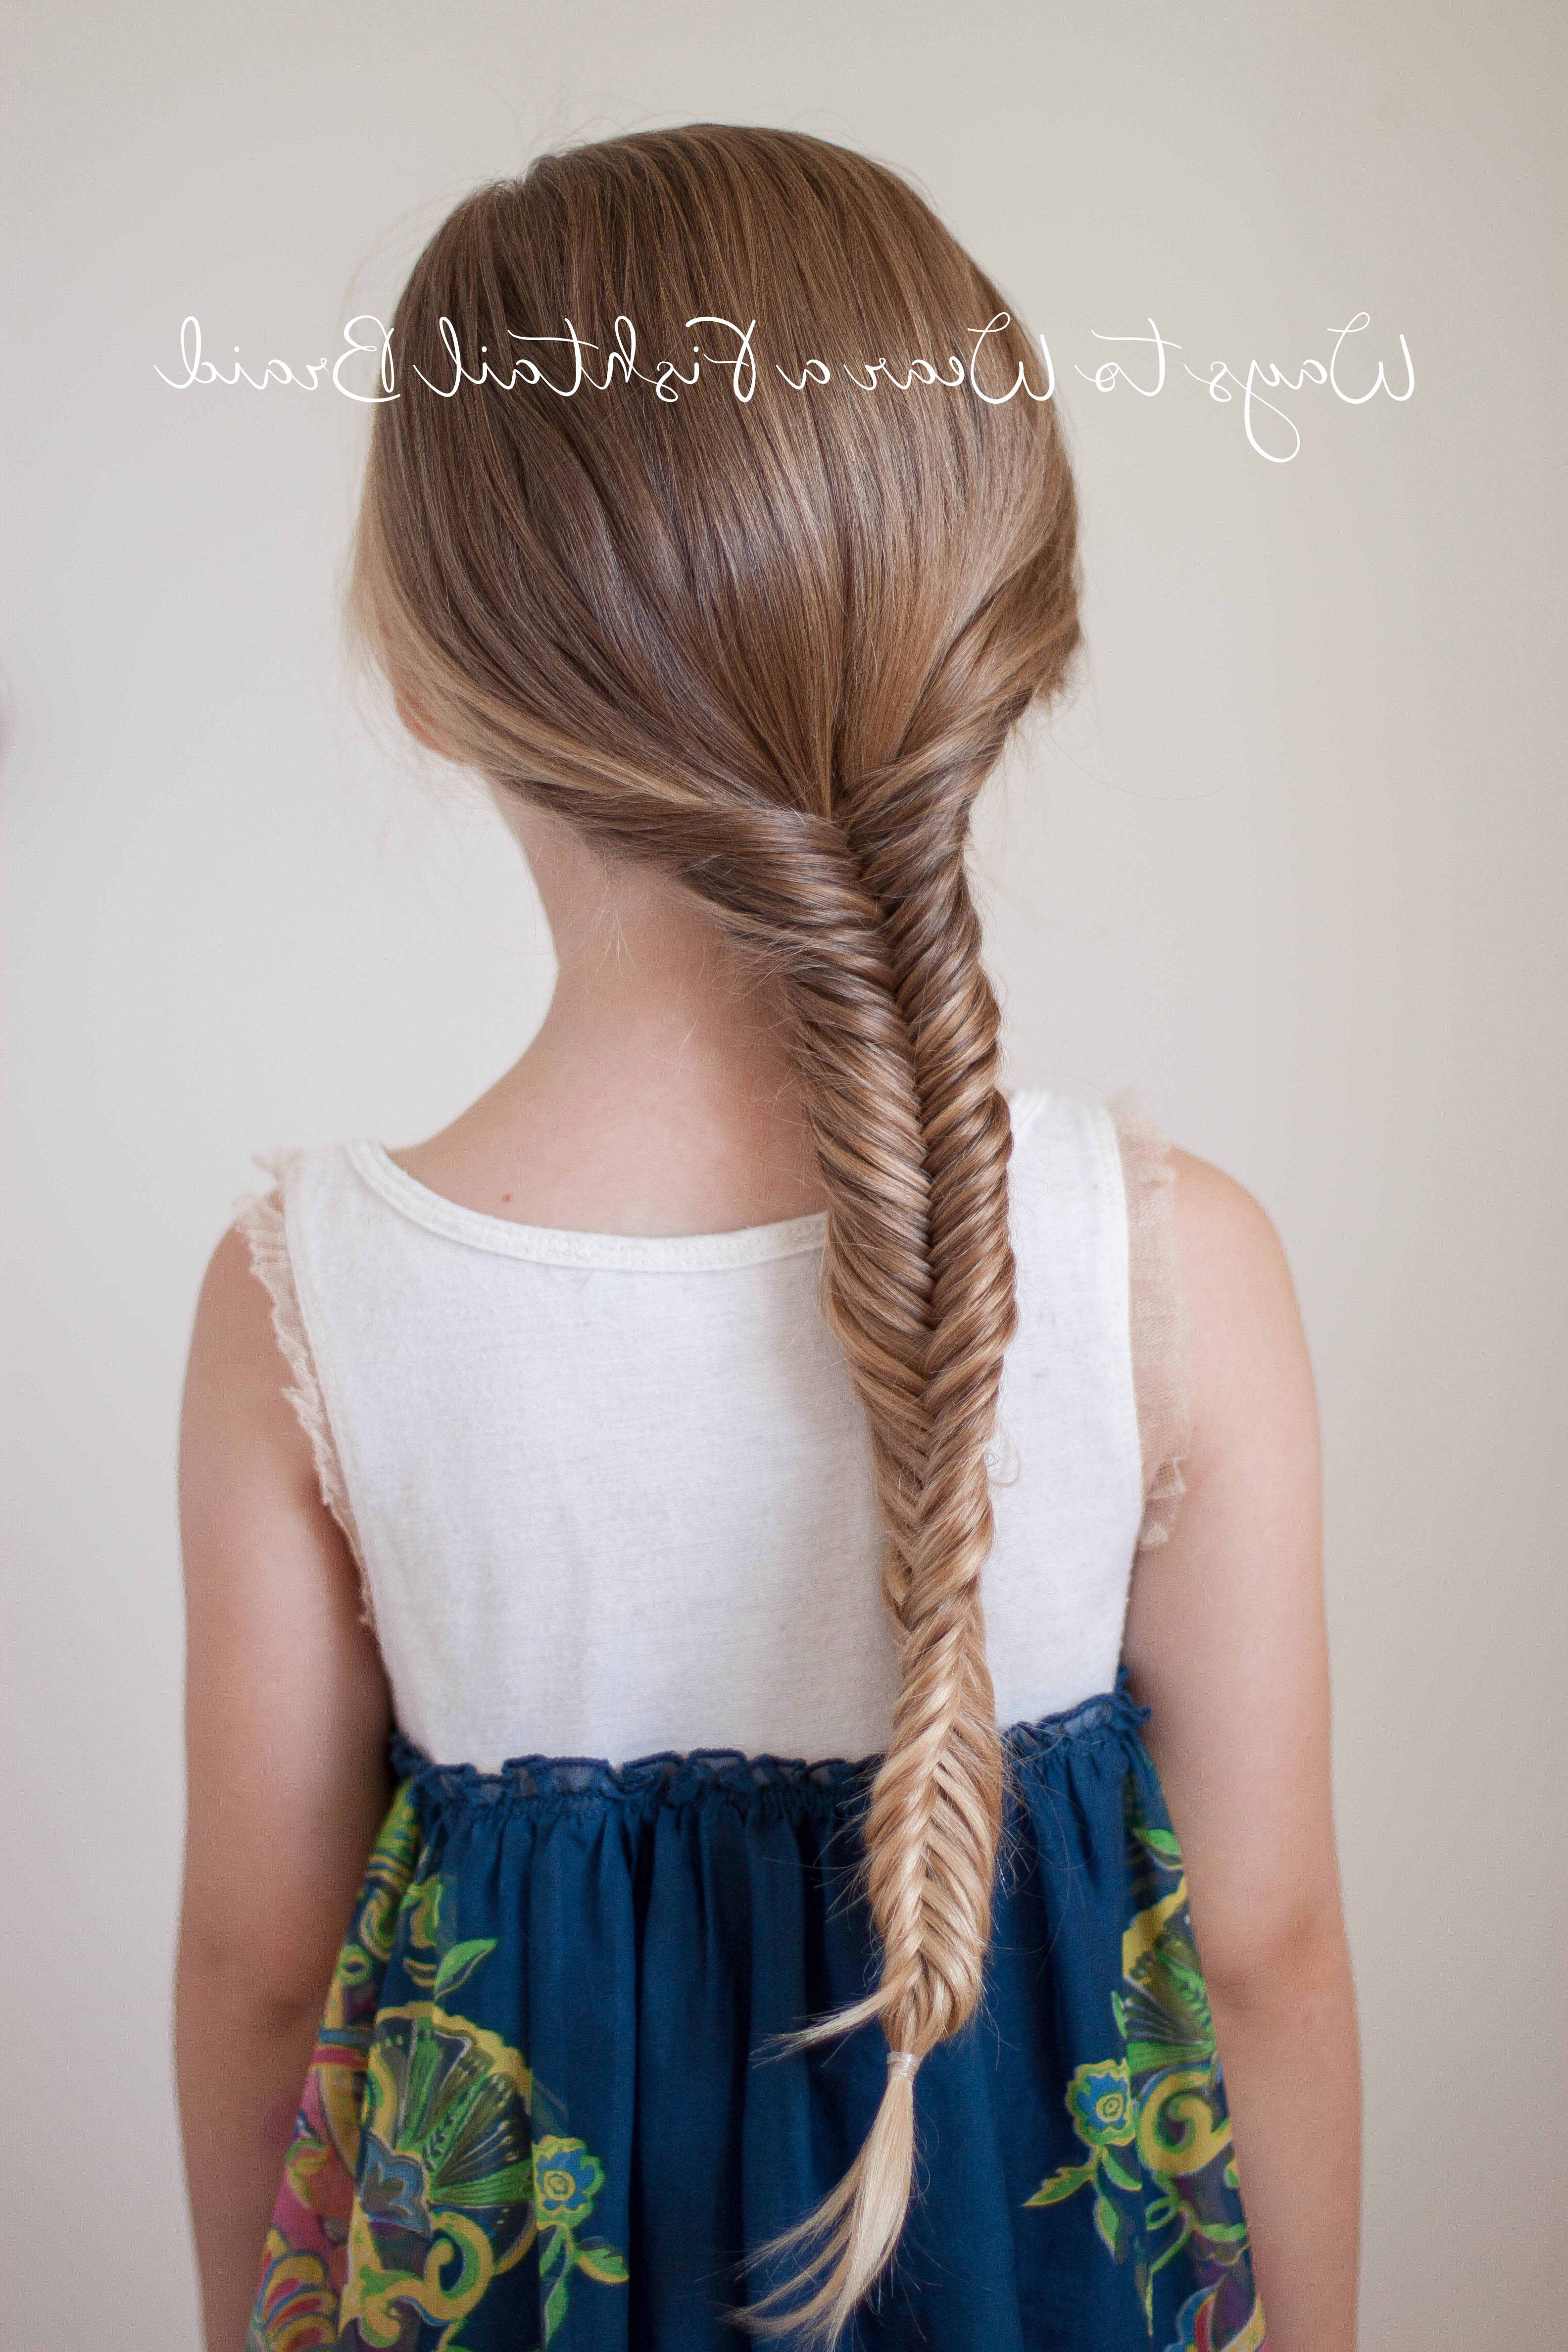 Widely Used Mermaid Braid Hairstyles With A Fishtail In Ways To Wear A Fishtail Braid (View 16 of 20)